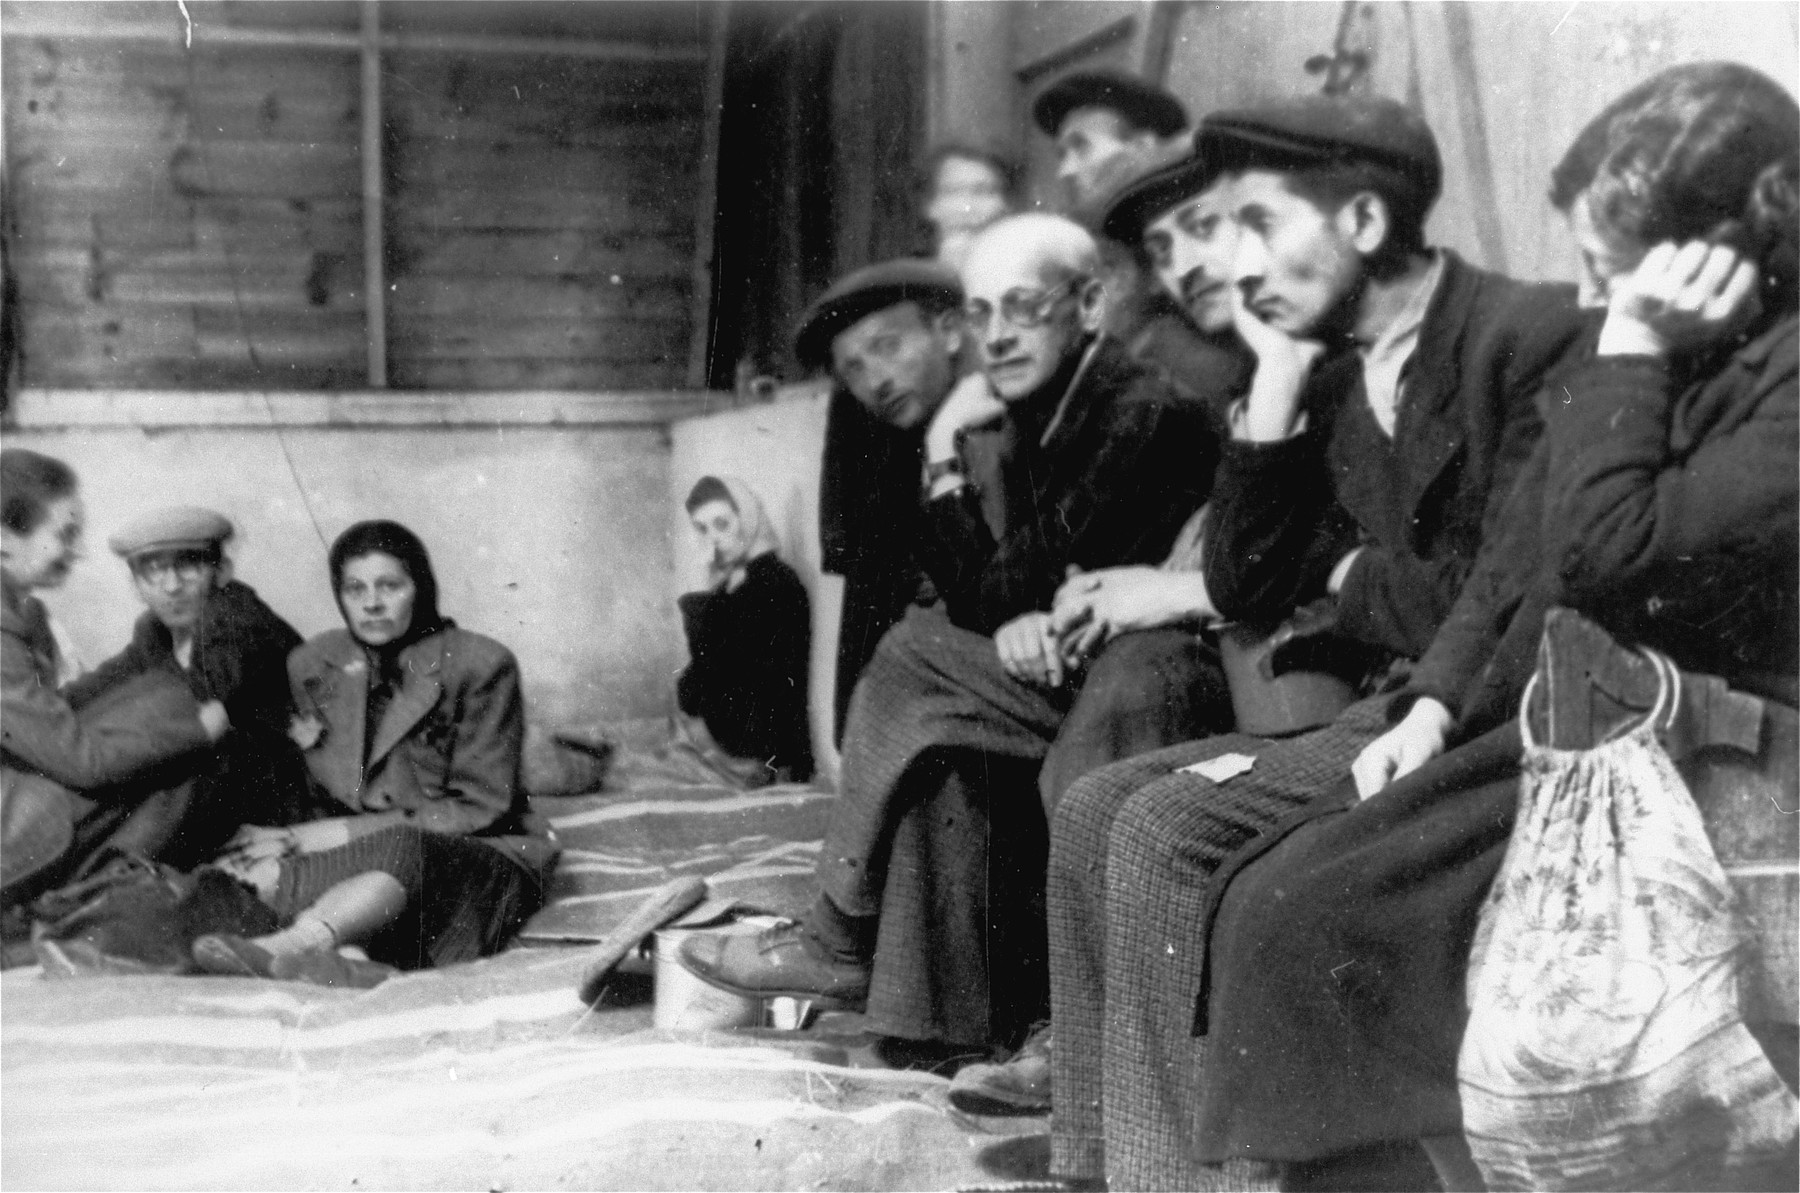 Jews who have been rounded-up for deportation in the Lodz ghetto are held at an assembly point on Krawiecka Street until trains are available to transport them out of the ghetto.